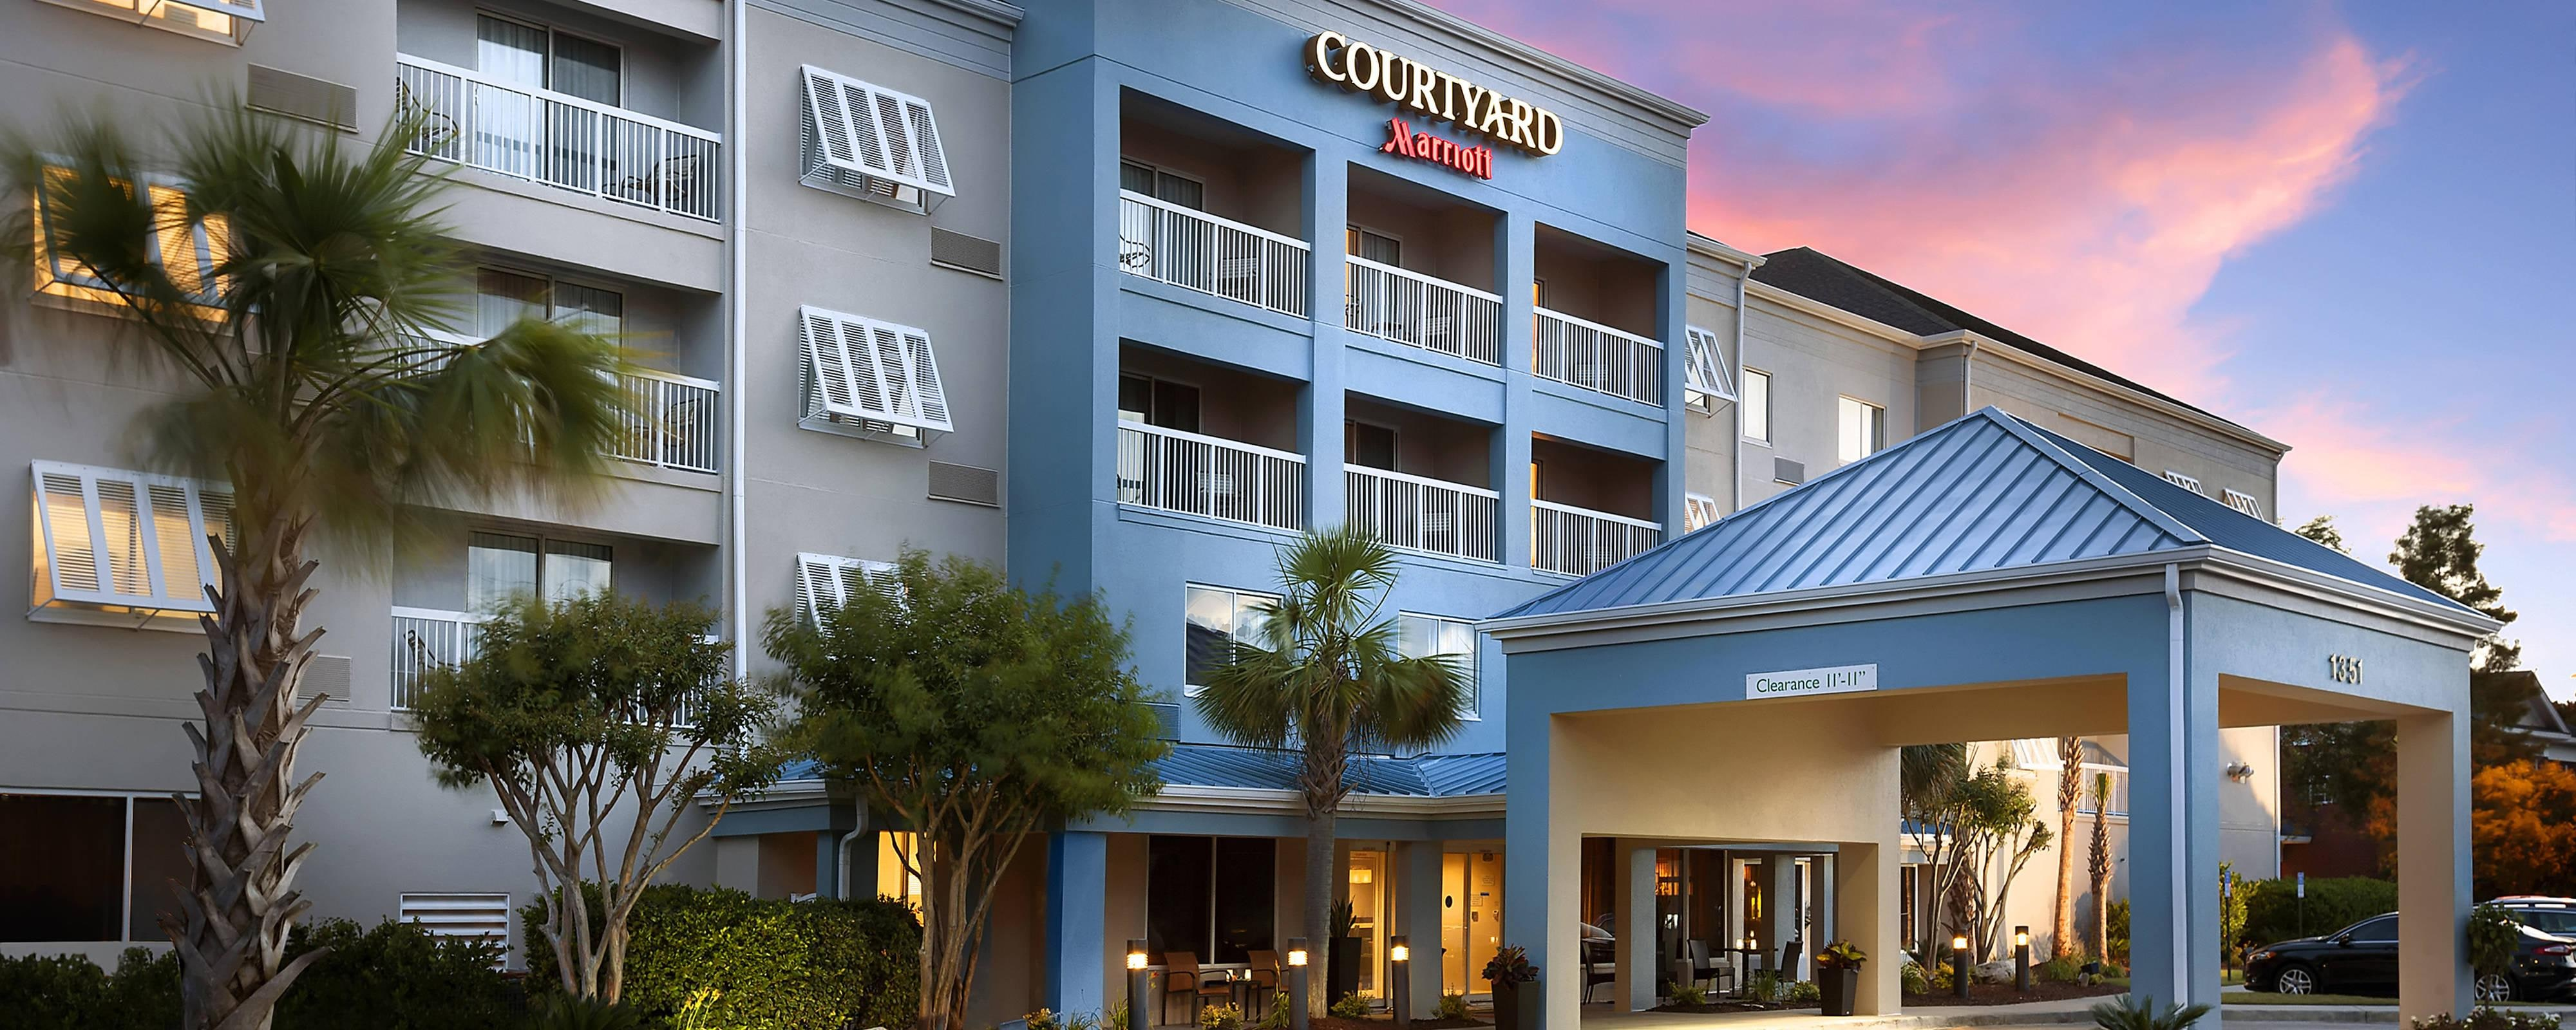 Broadway At The Beach And Myrtle Beach Hotels Courtyard Myrtle Beach Broadway